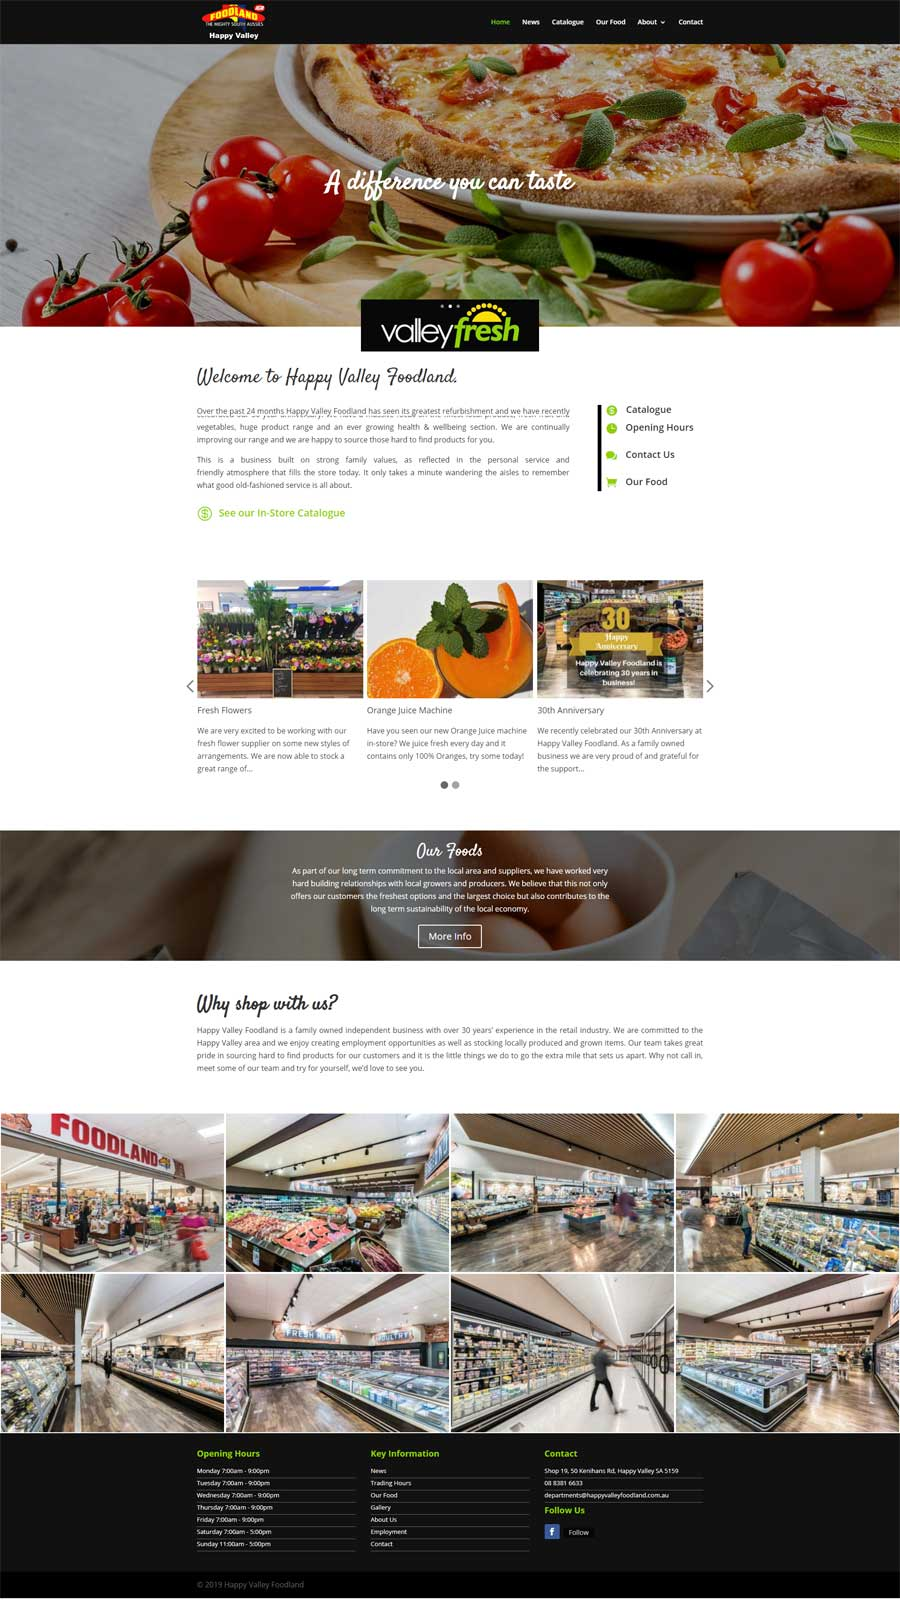 Website Design Flagstaff Hill - Supermarkets